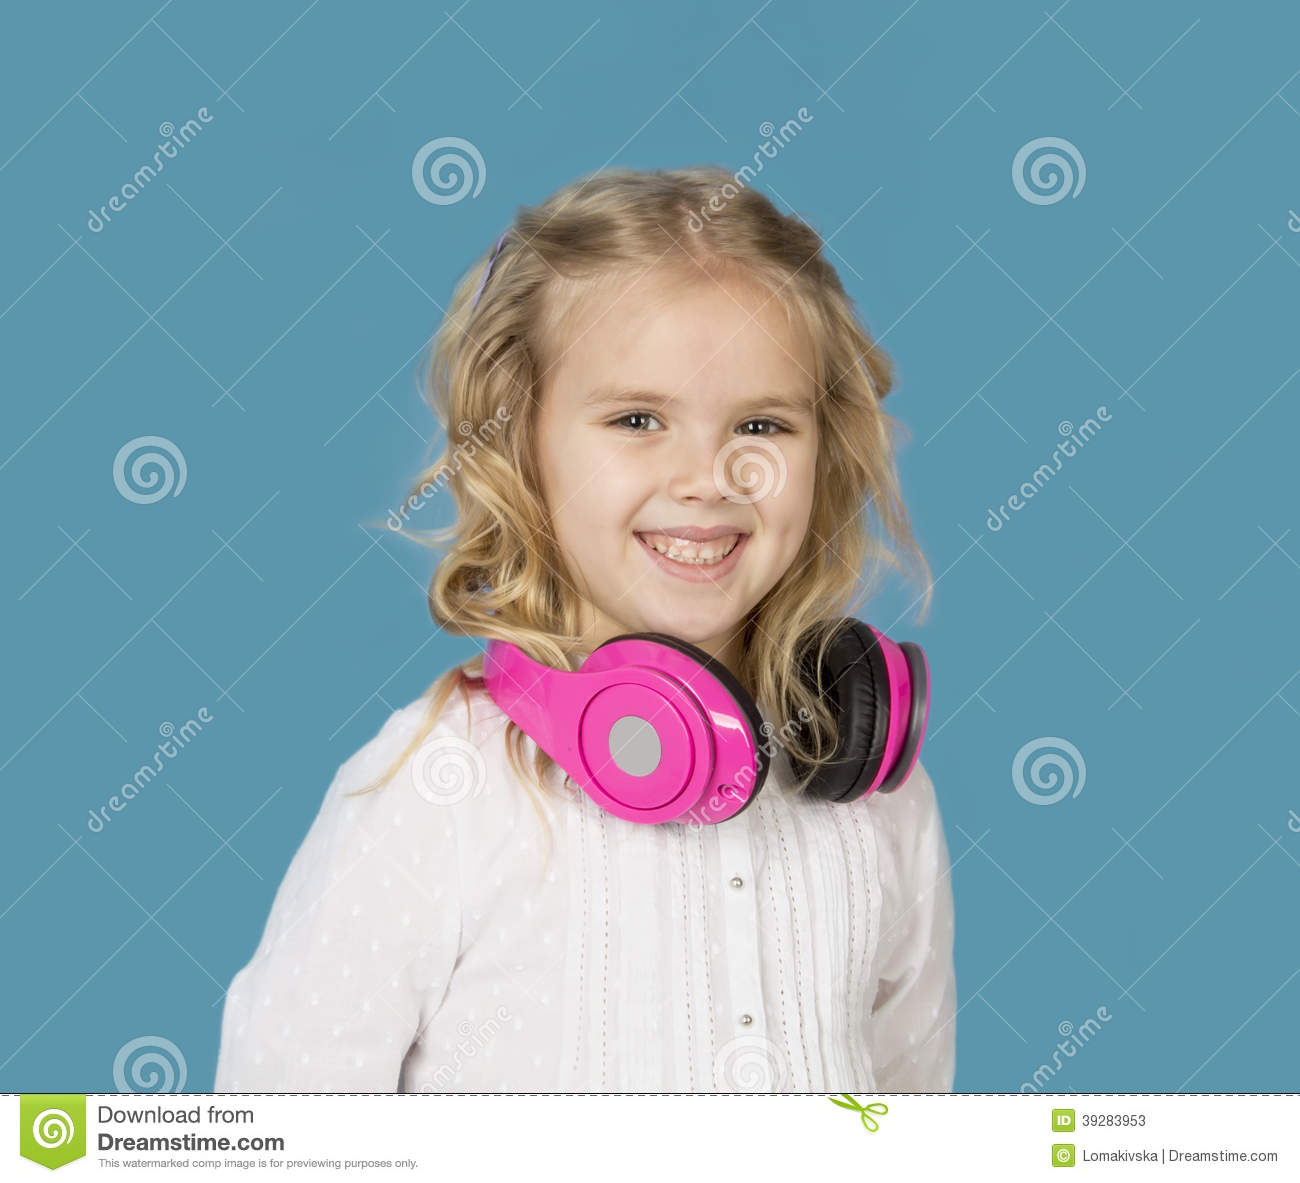 Beautiful Headphones Beautiful Girl With Headphones Smiling Stock Photo Image